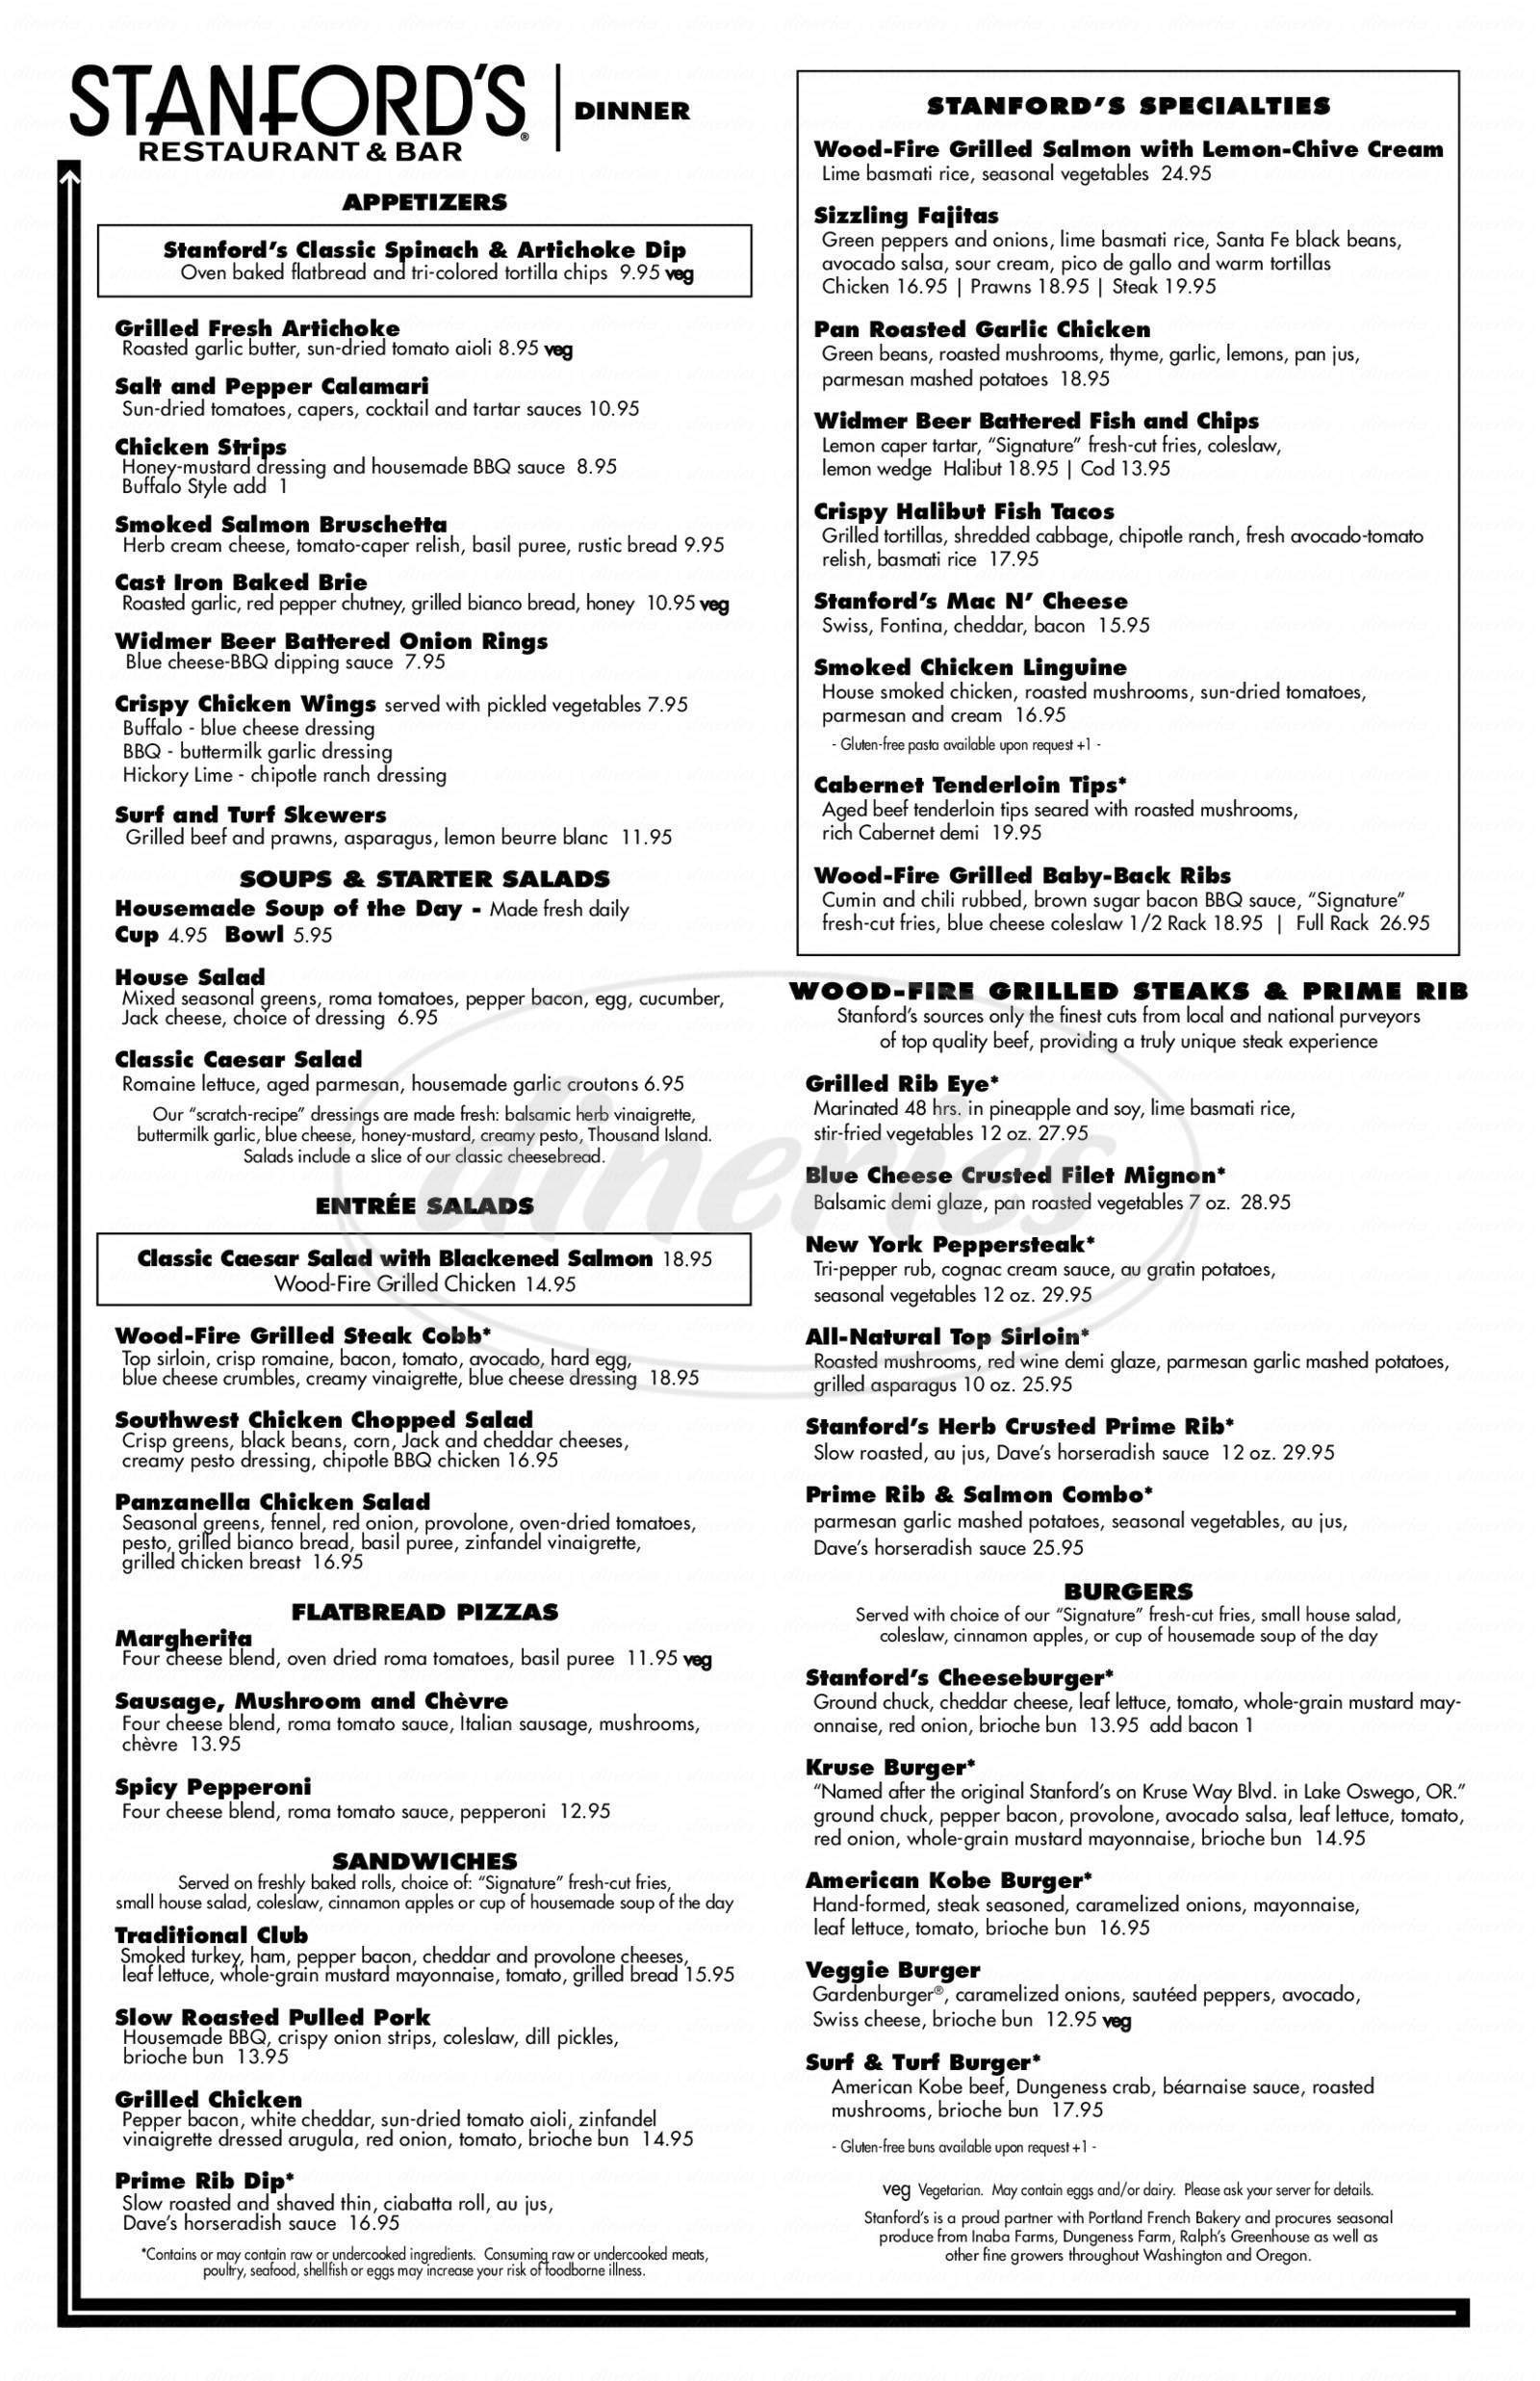 menu for Stanford's Restaurant & Bar